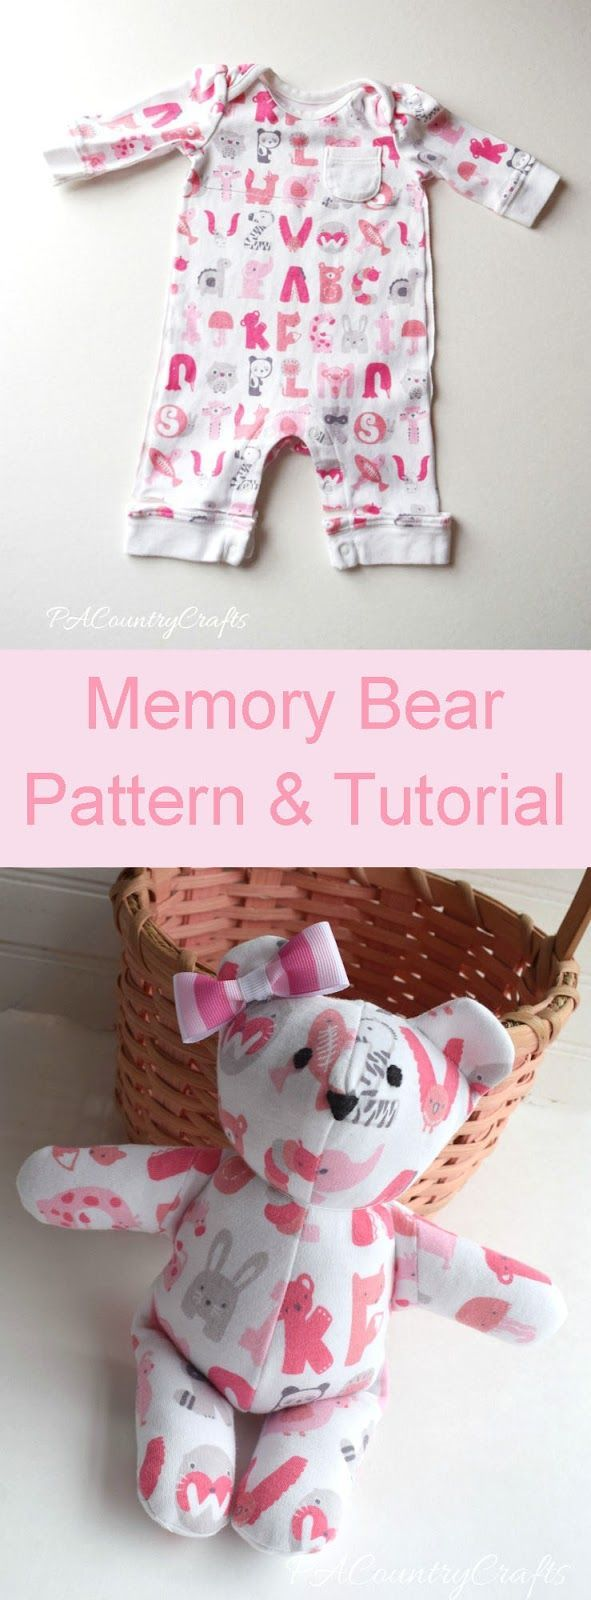 Use baby's going home from the hospital outfit to make a memory bear! Free sewing pattern and tutorial.                                                                                                                                                                                 More